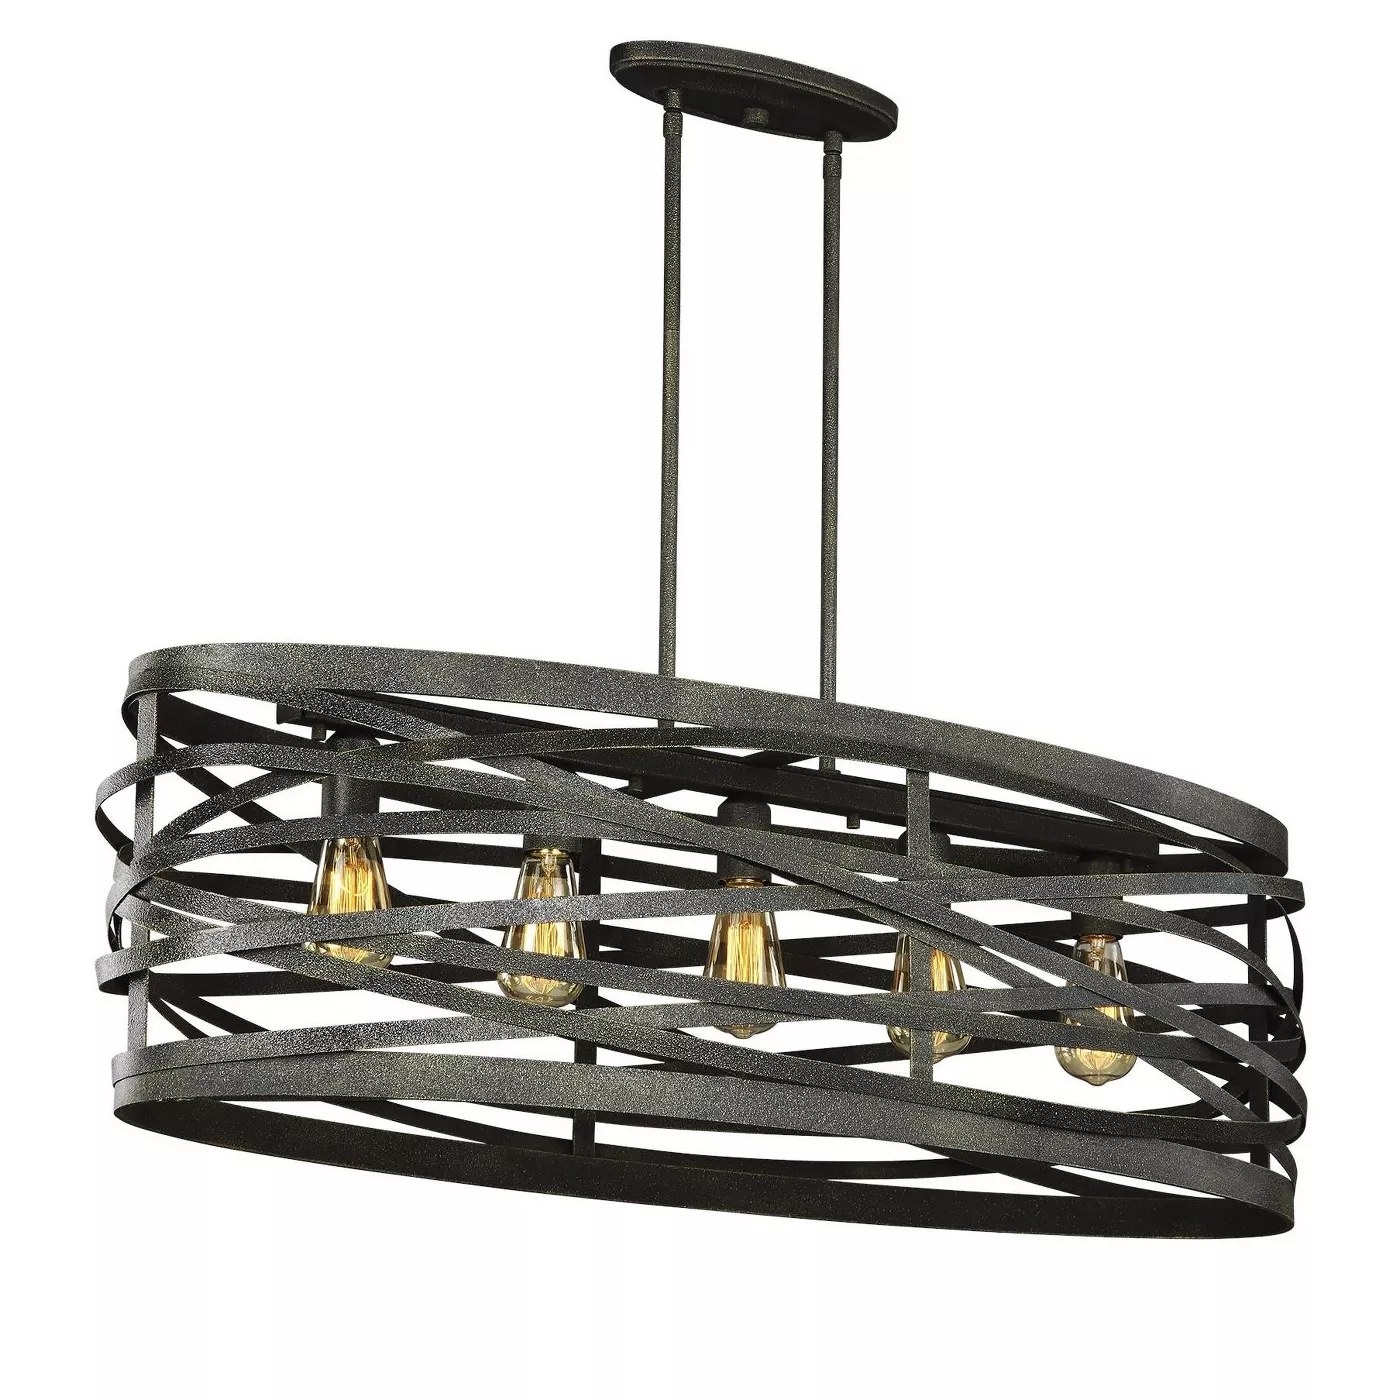 The 5-bulb light fixture with gray, freeform rings around them